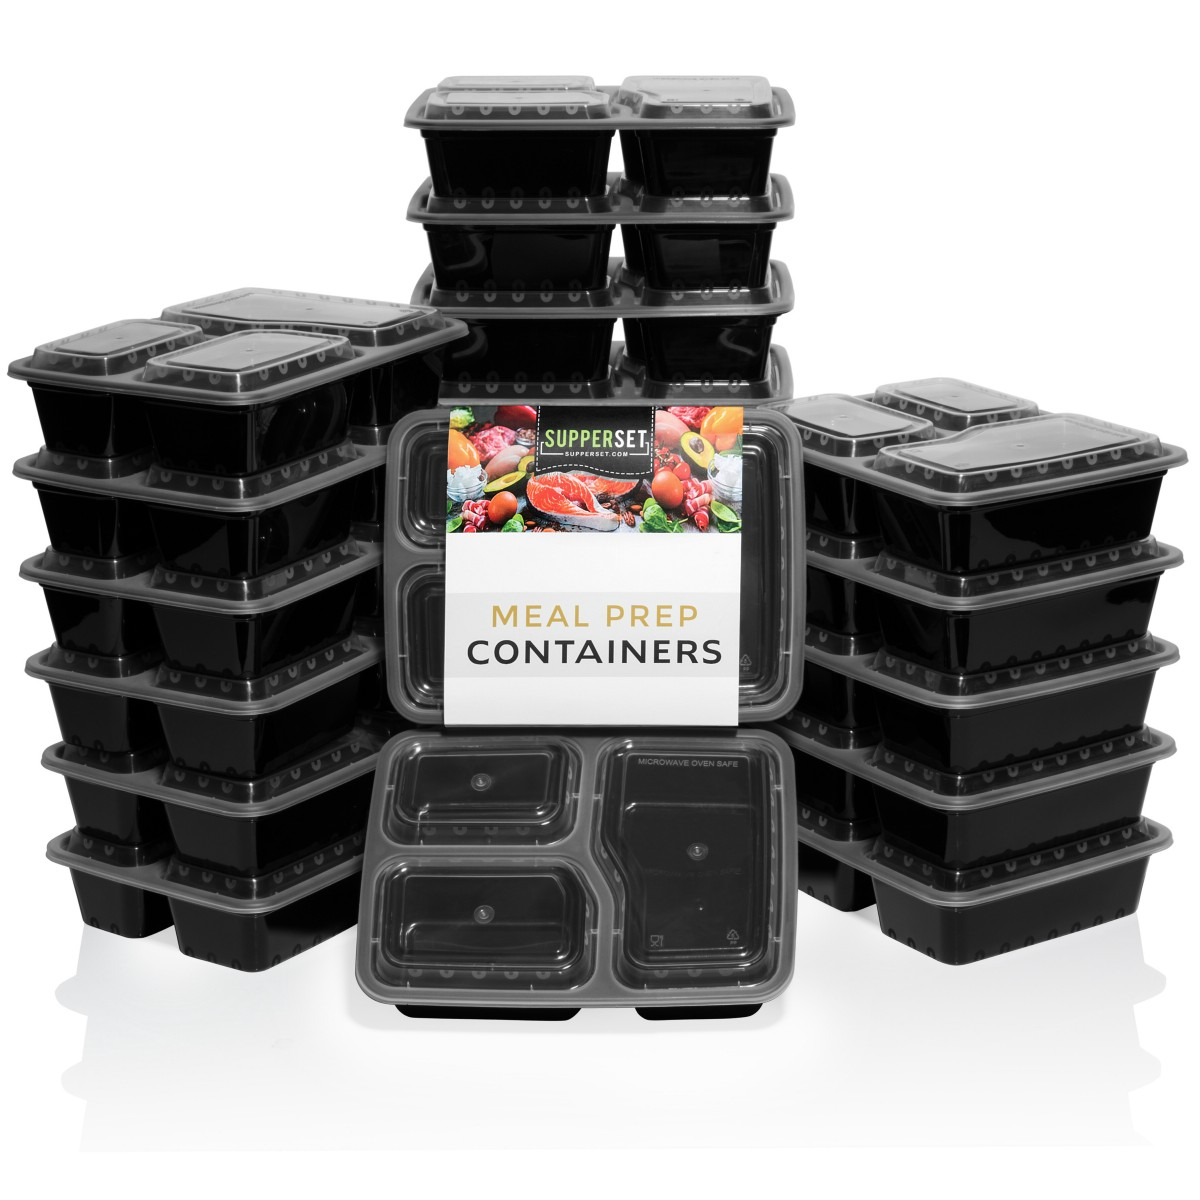 Best Meal Prep Containers 2020 Top 5 Best Meal Prep Containers to Buy in 2019 — SupperSet